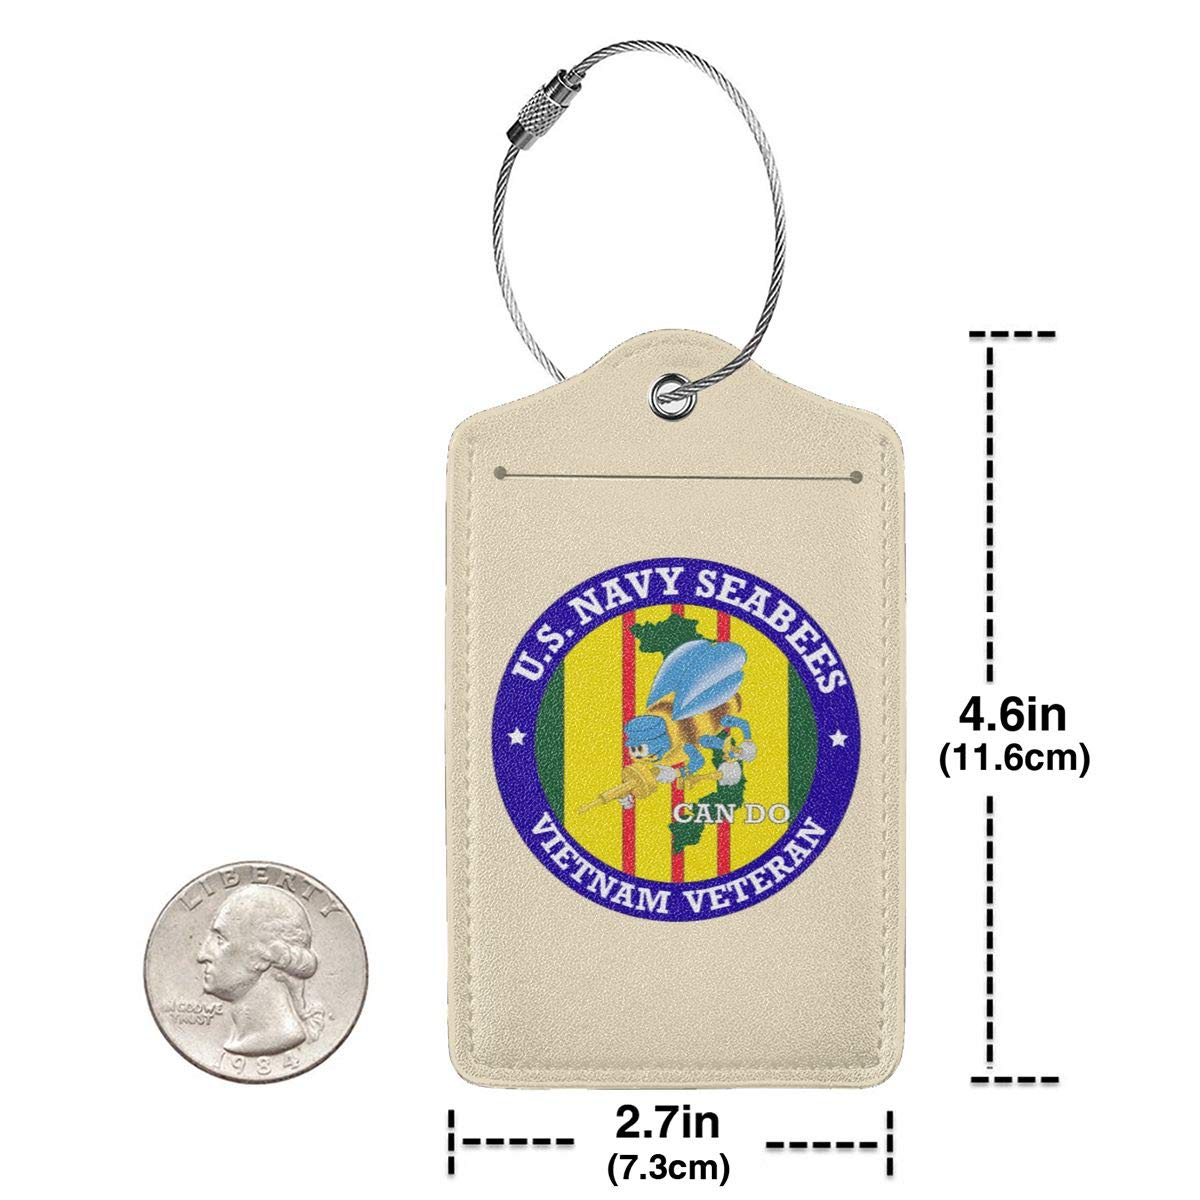 Navy Seabees Vietnam Veteran Leather Luggage Tag Travel ID Label For Baggage Suitcase U.S